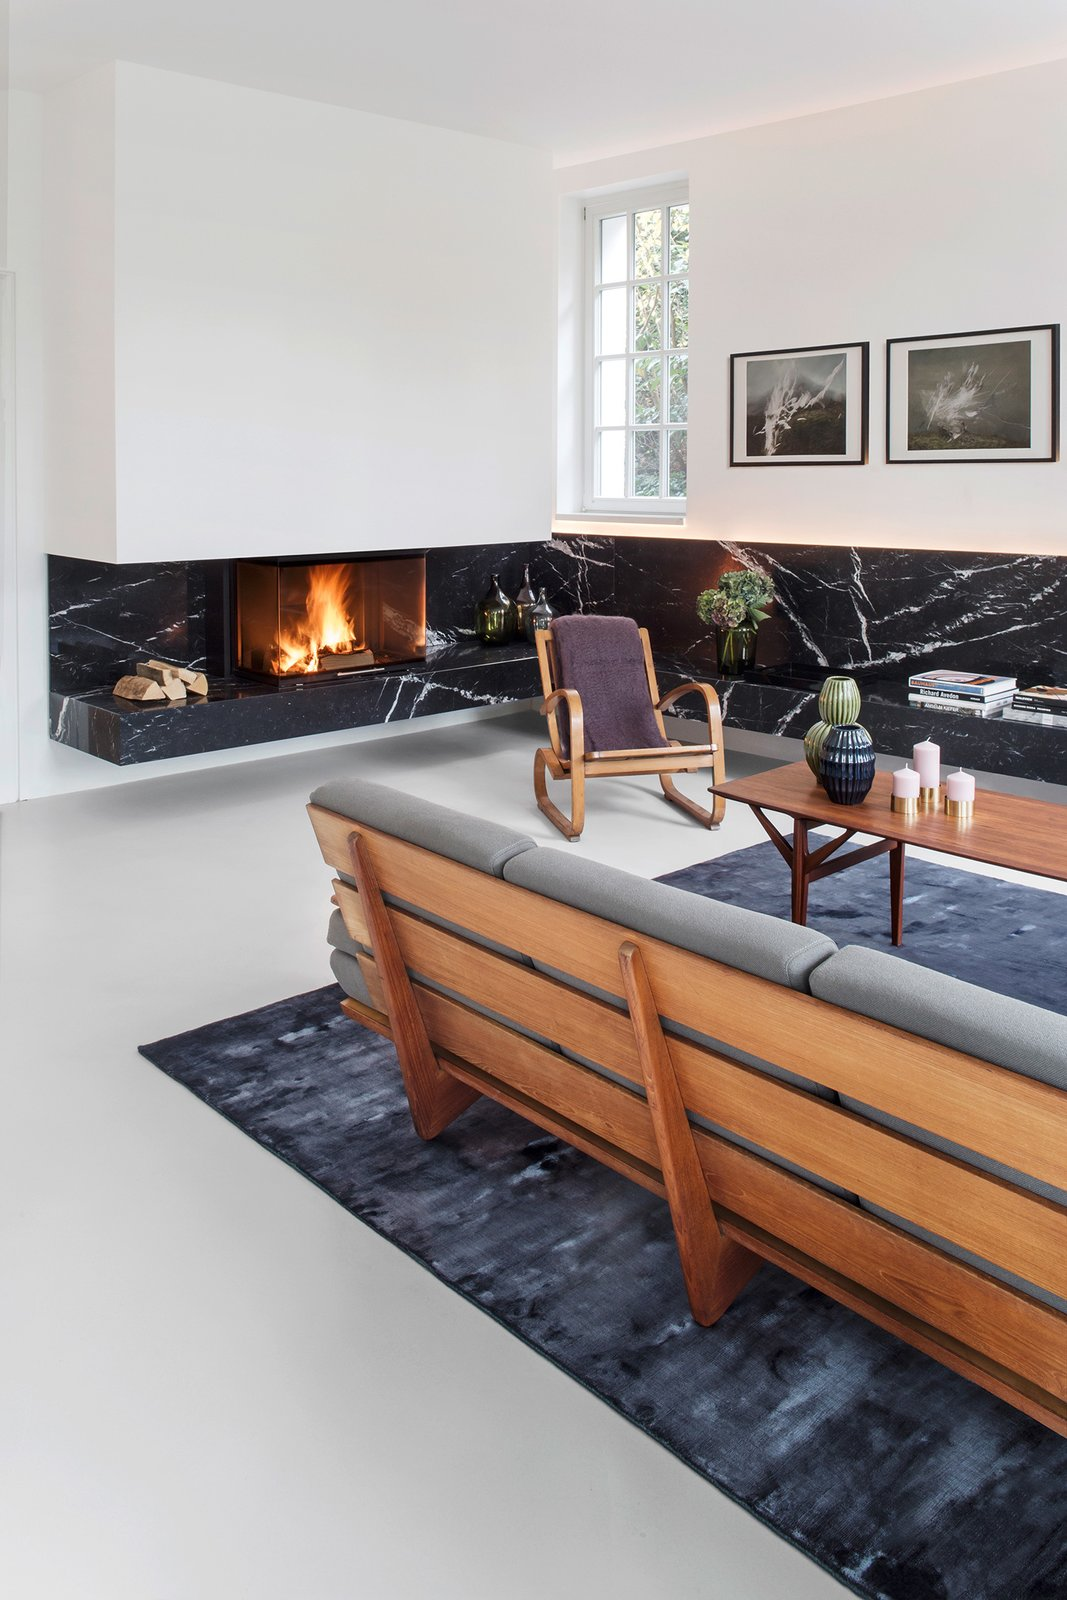 Nero Marquina marble is used in multiple rooms. In the living room, a strip of stone defines a bench that wraps around the space. Both the sofa and armchair are vintage.  Ways to Define Spaces With Area Rugs by Heather Corcoran from Black Marble Runs Through This Refined Berlin Apartment